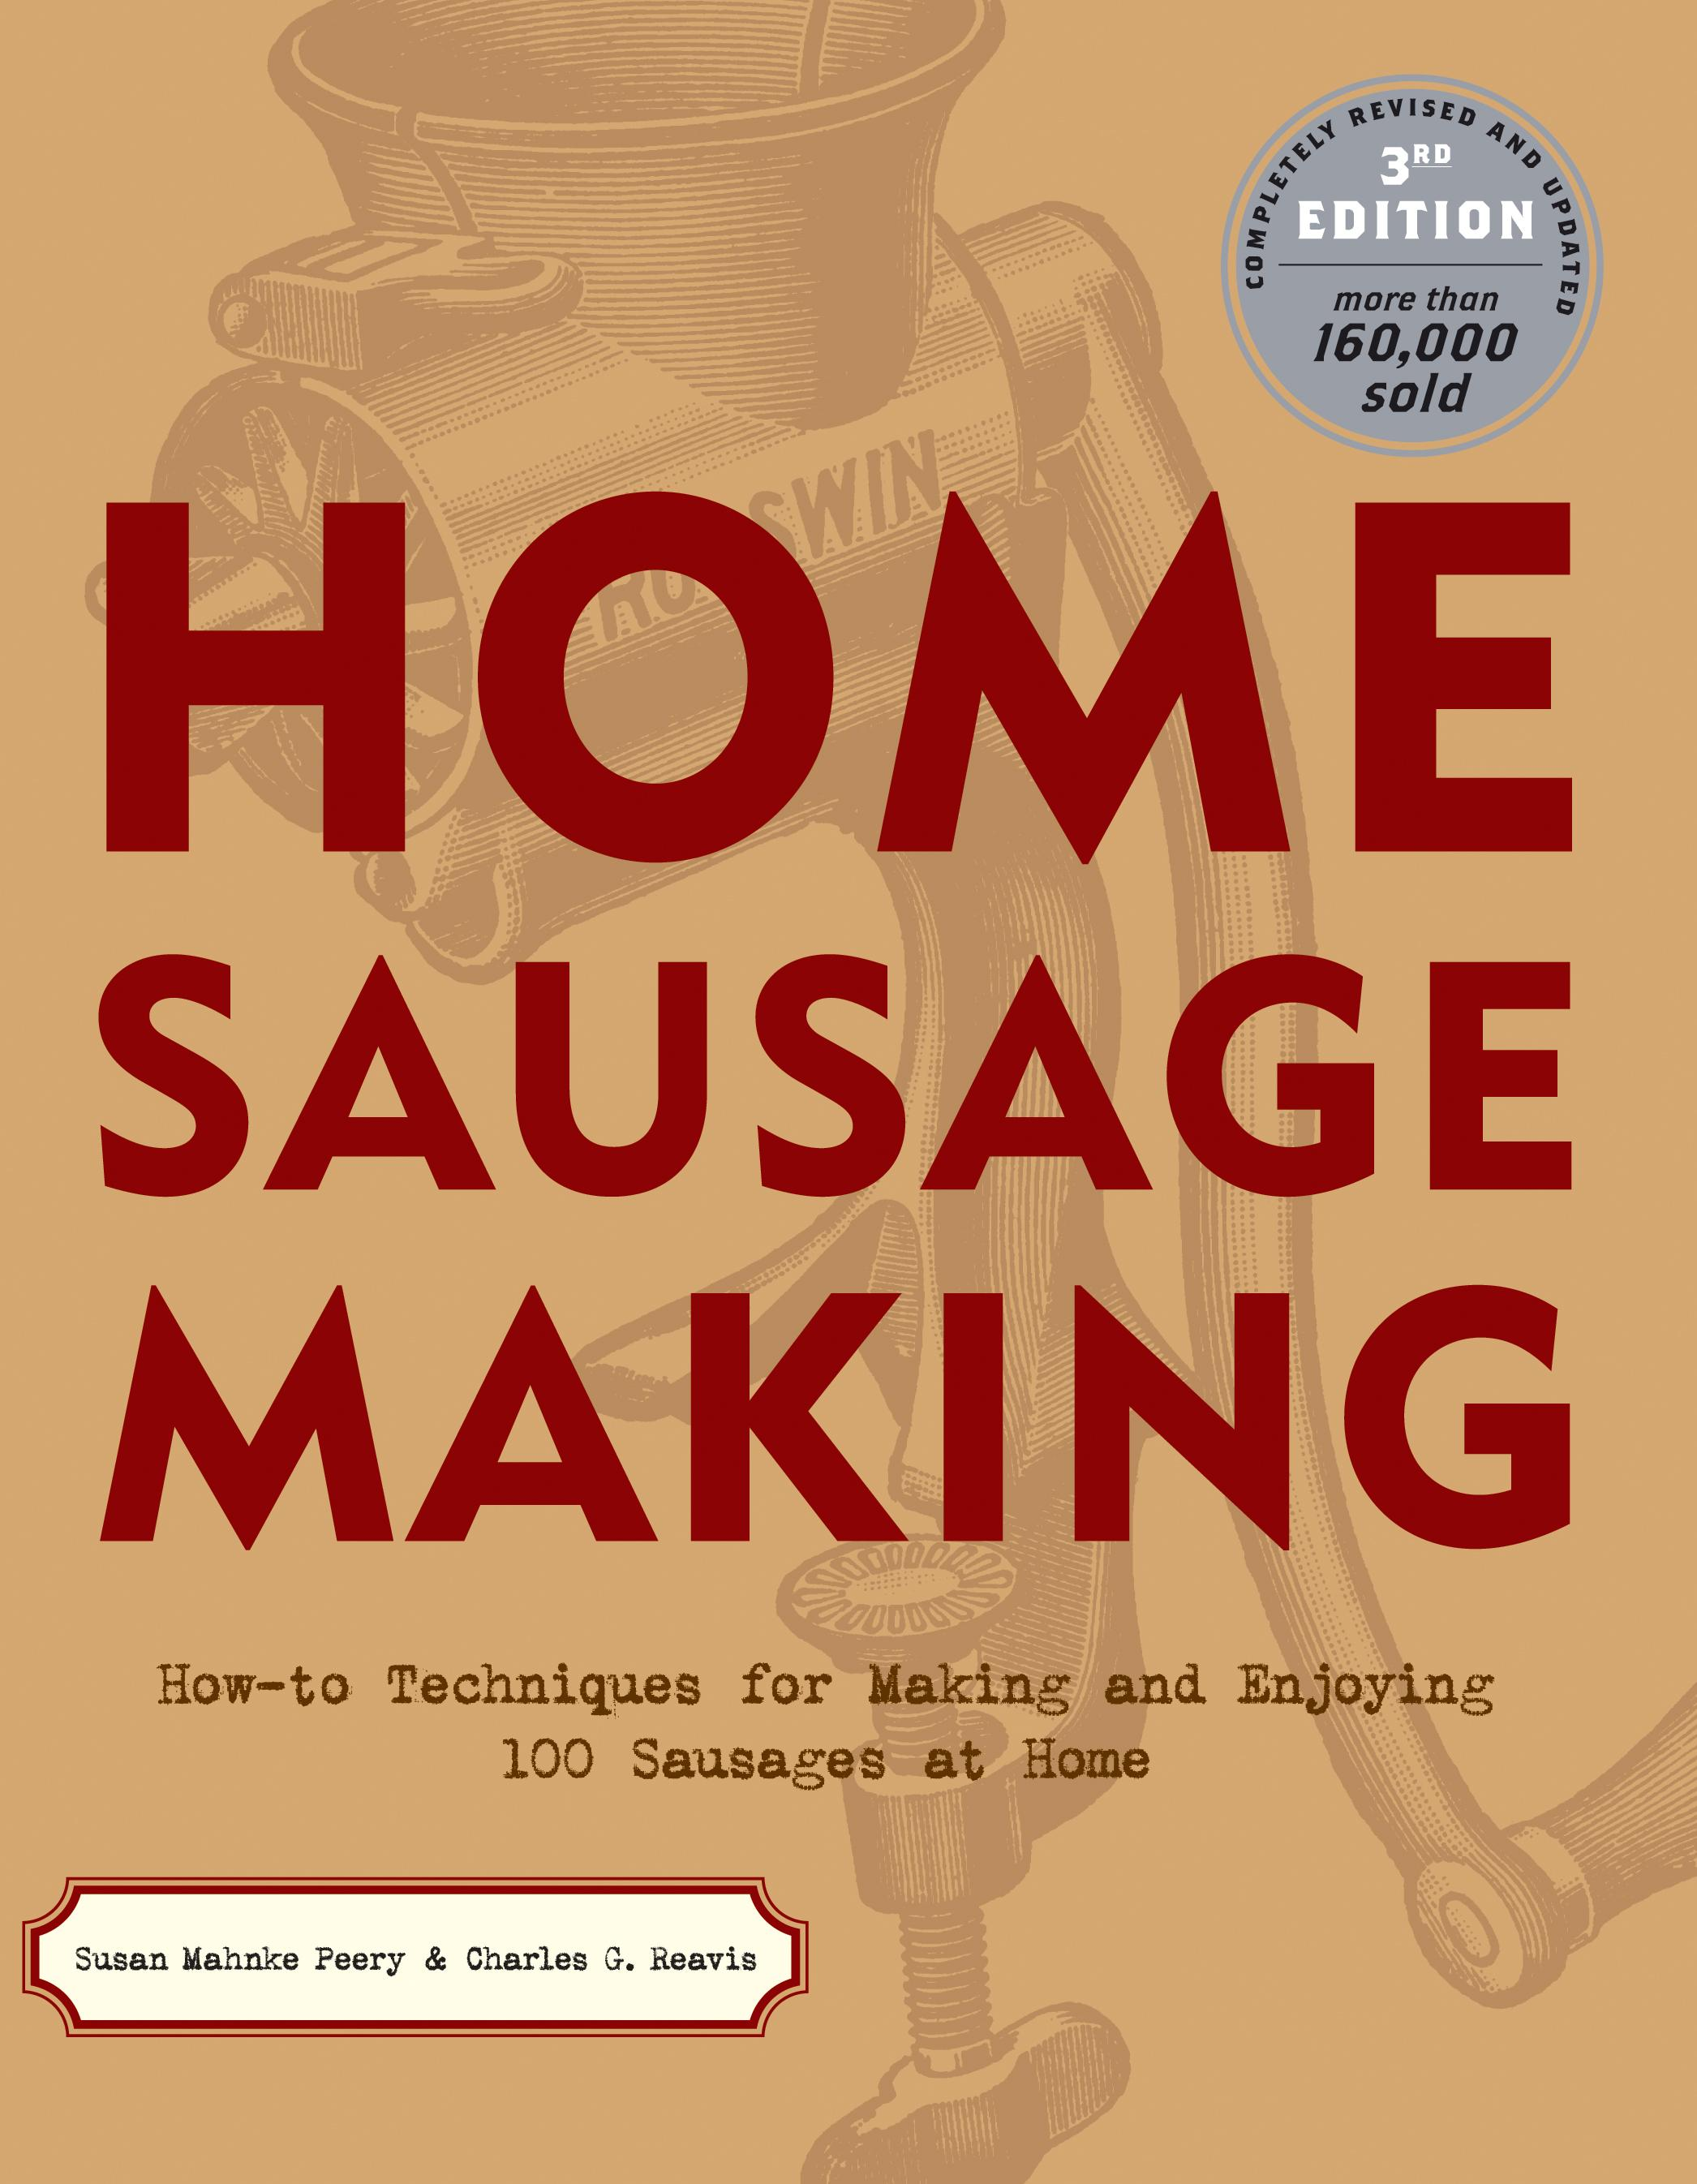 Home Sausage Making: How-To Techniques for Making and Enjoying 100 Sausages at Home EB9781603424516